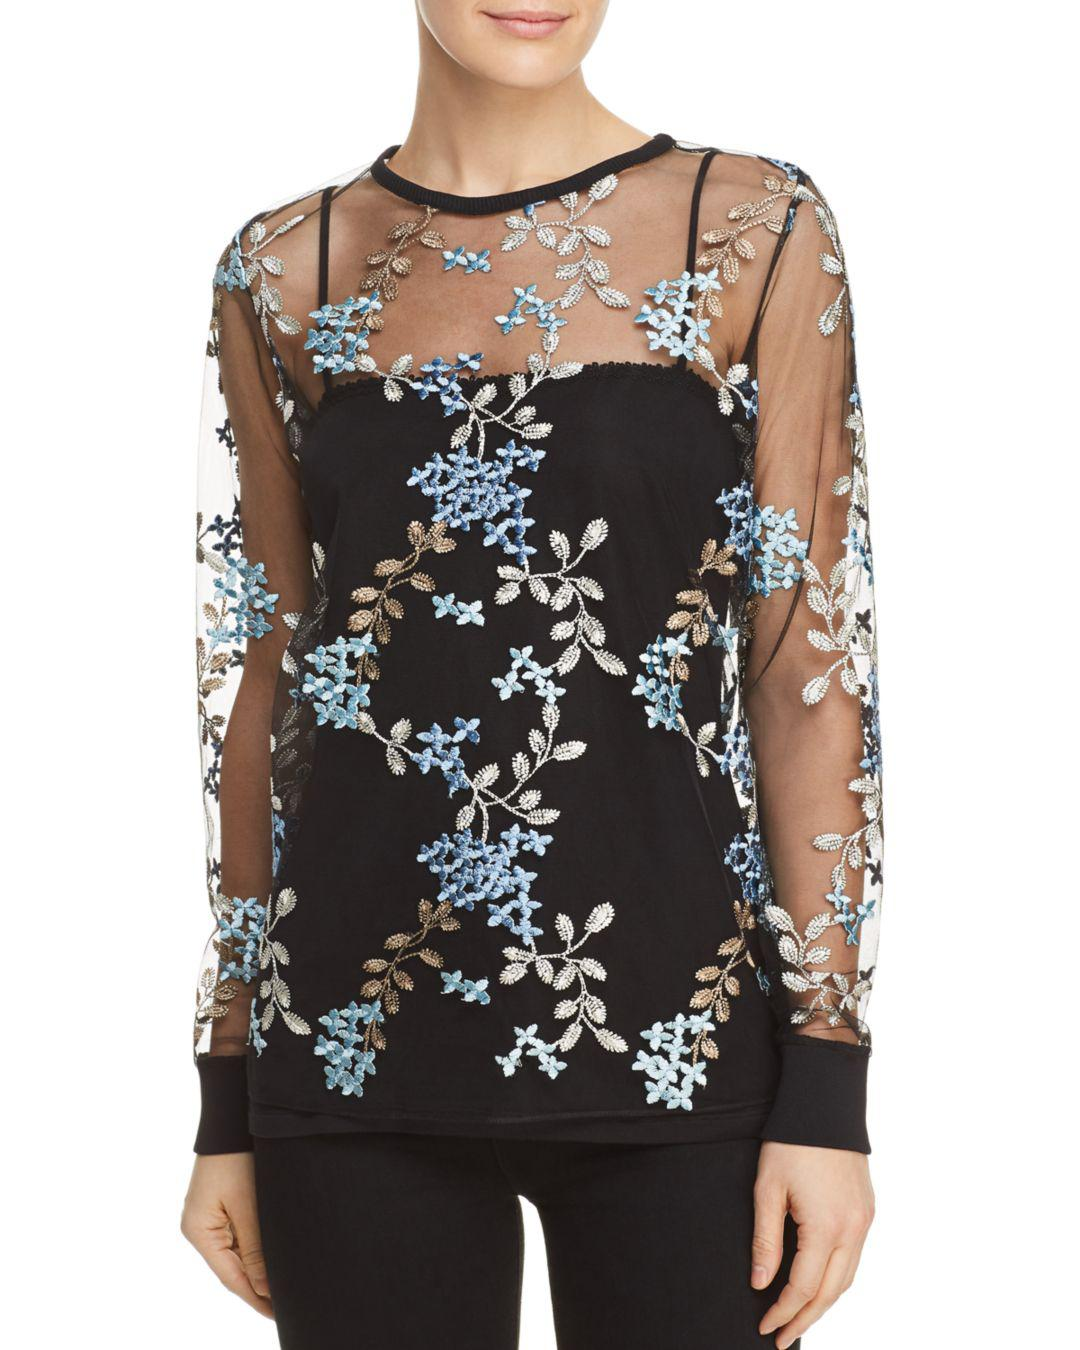 55b4b4abe9dd1f Lyst - Elie Tahari Val Floral Embroidered Top in Black